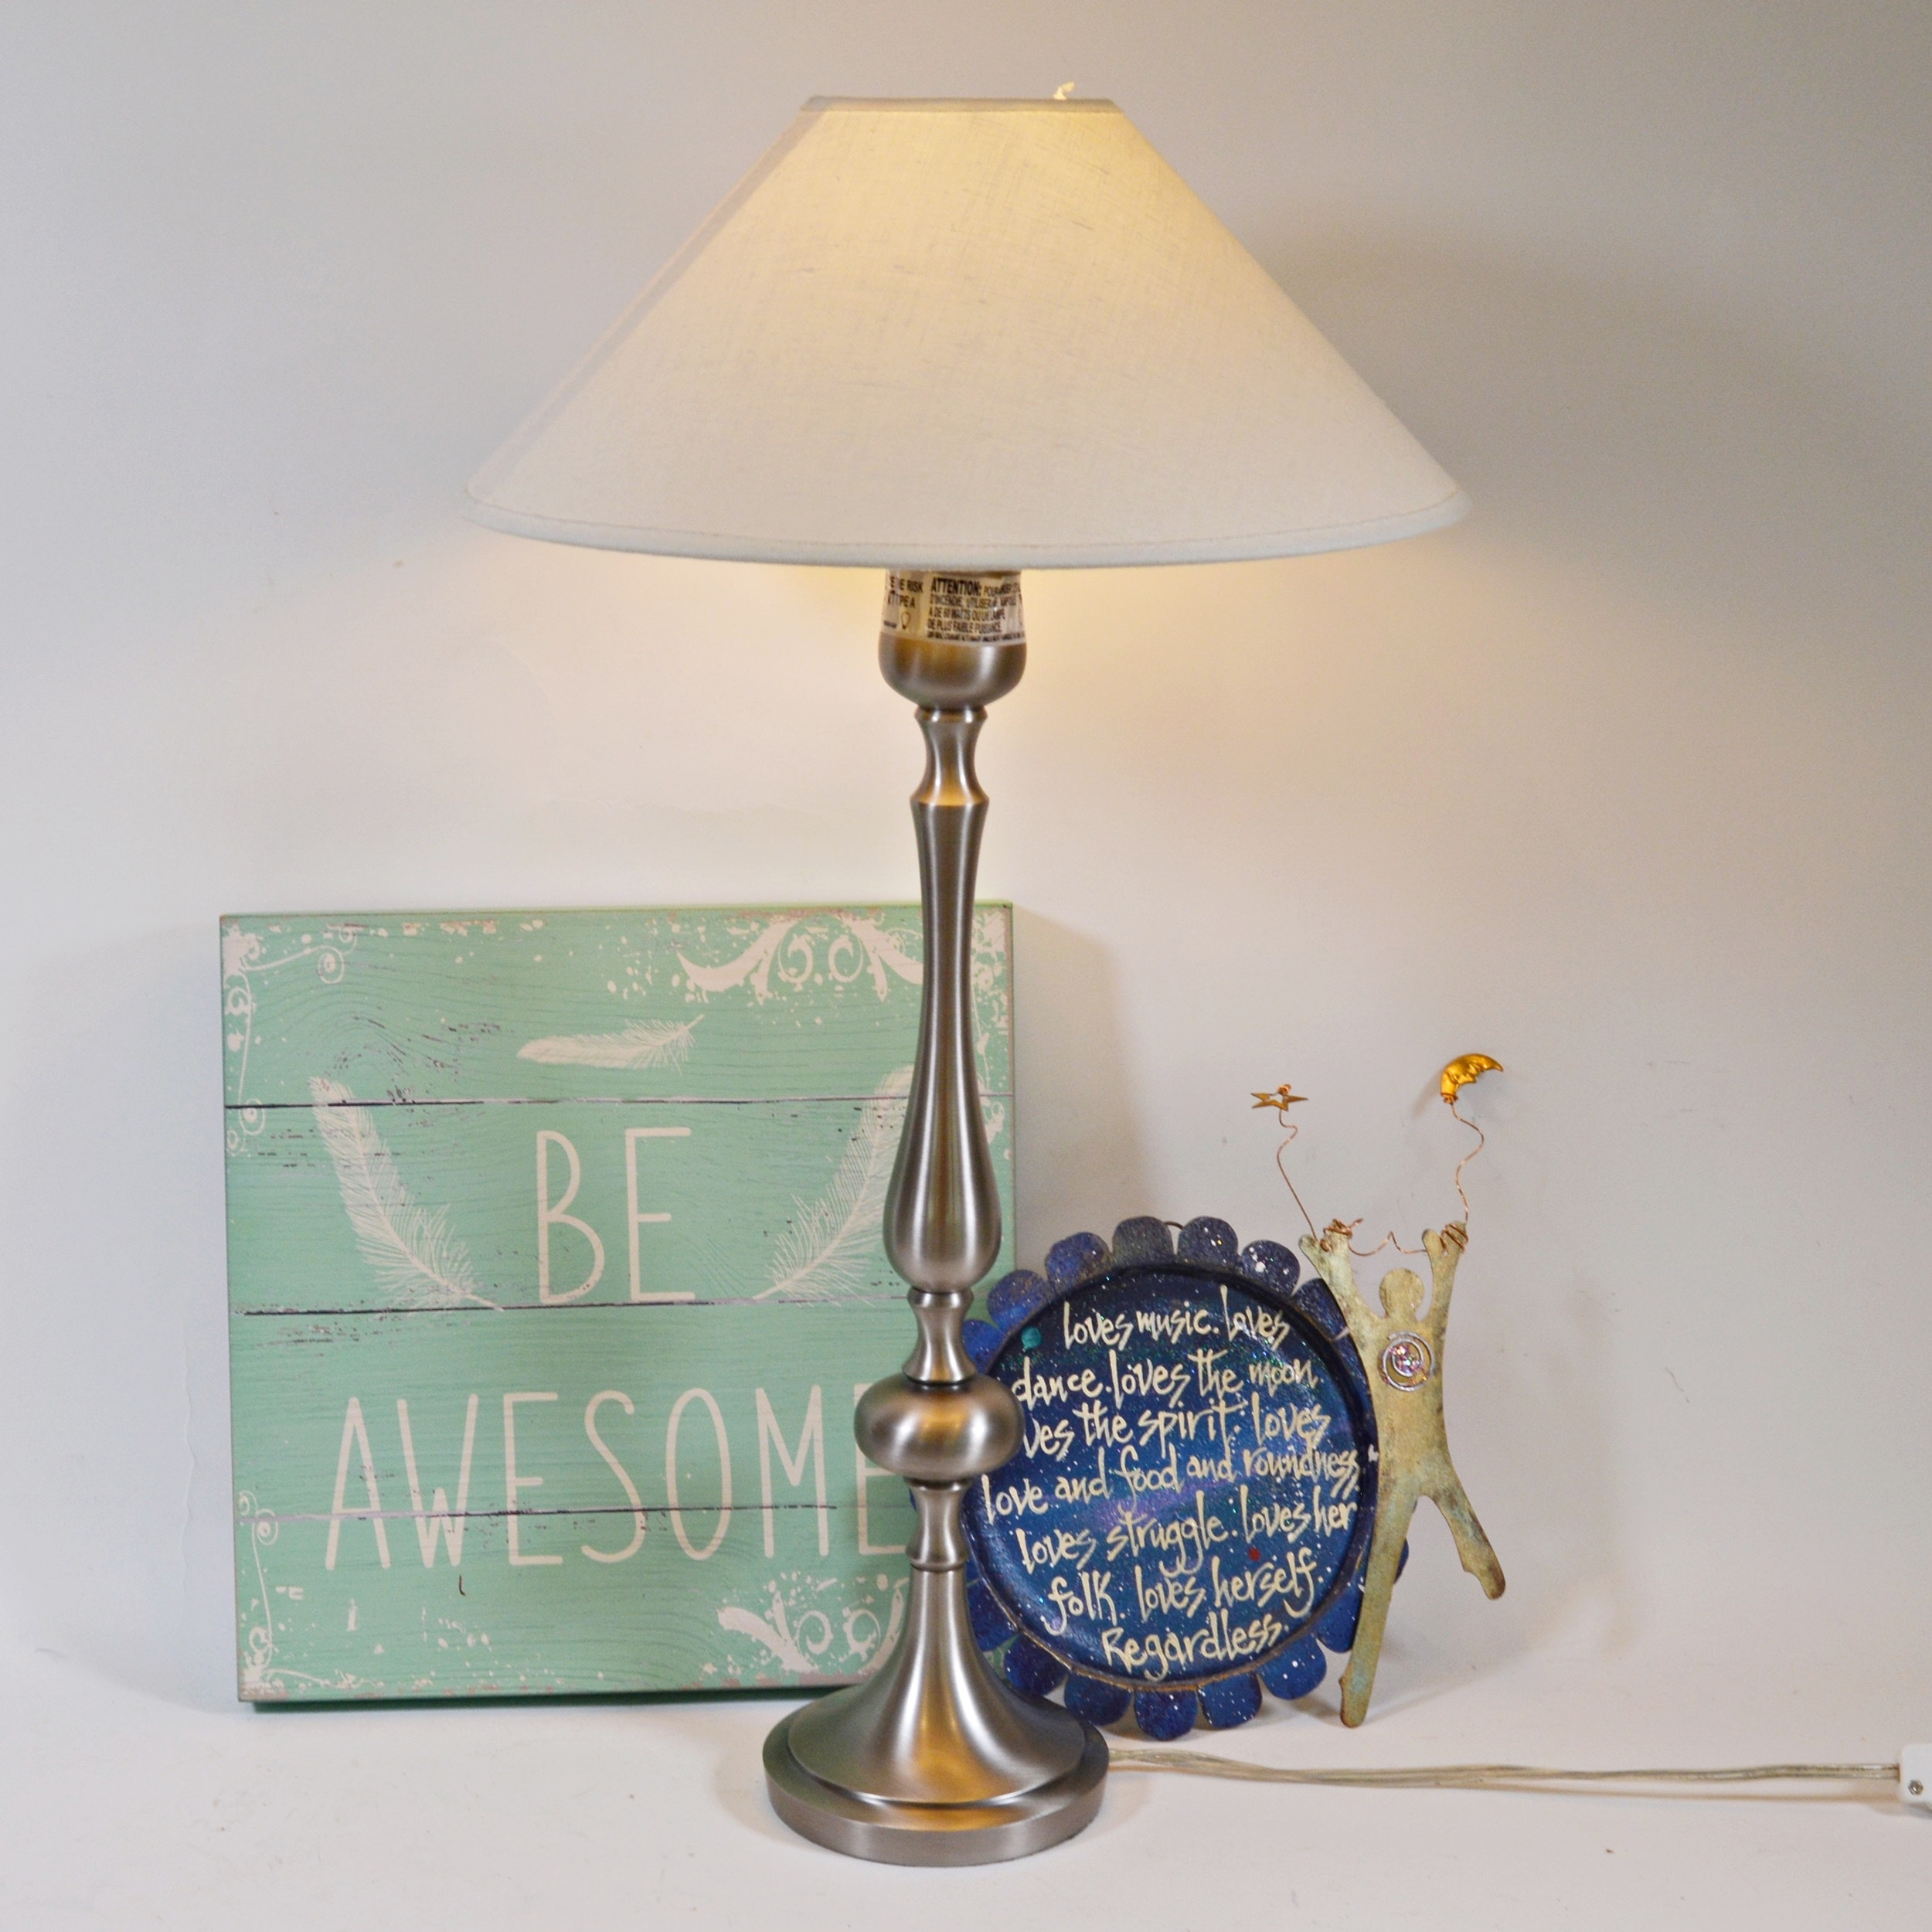 Pottery Barn Table Lamp And Other Room Decor Ebth